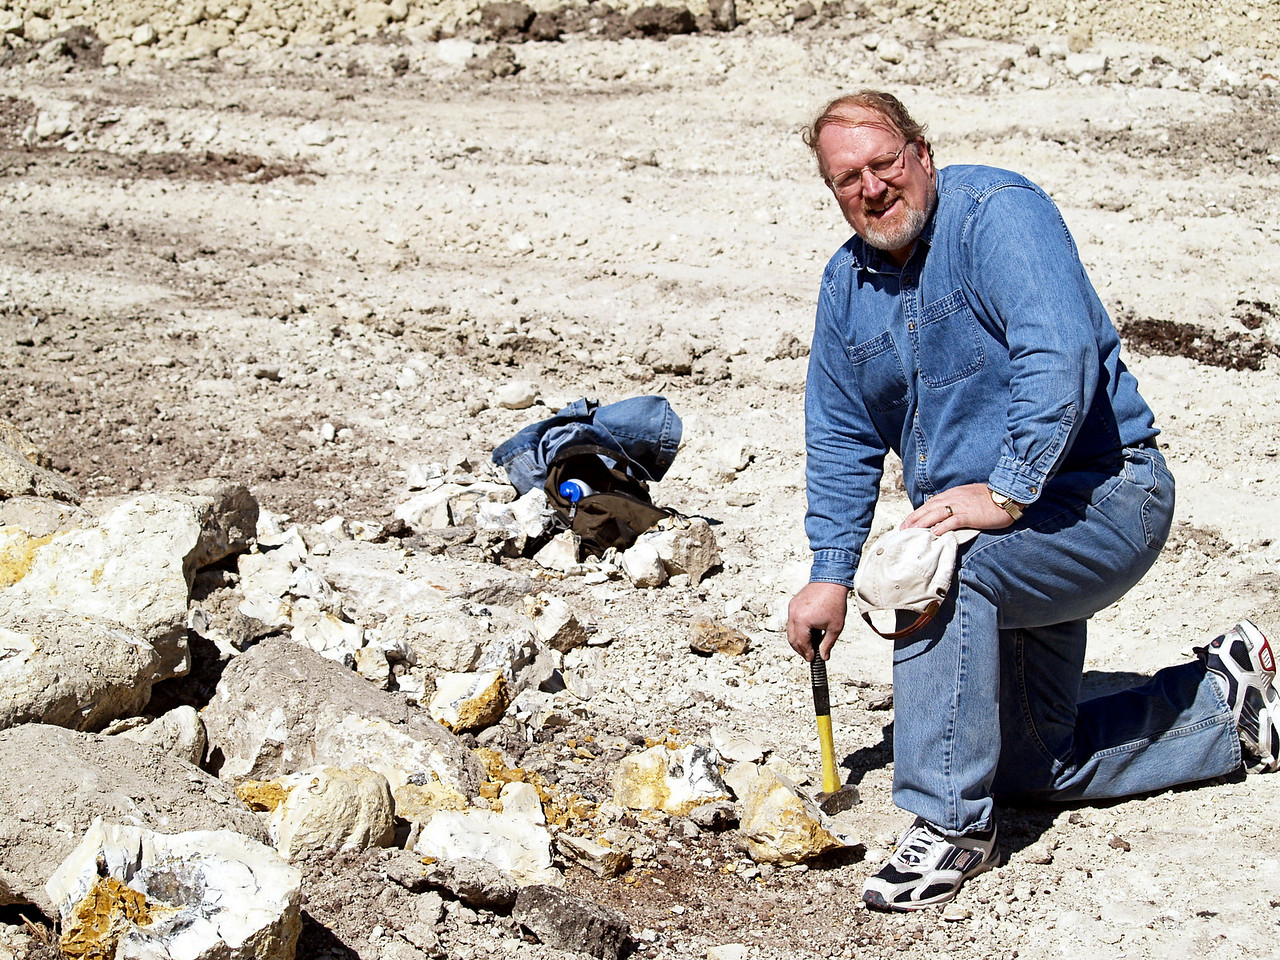 OLYMPUS DIGITAL CAMERA--Al Cherepon next to concretions filled with<br /> crystals.